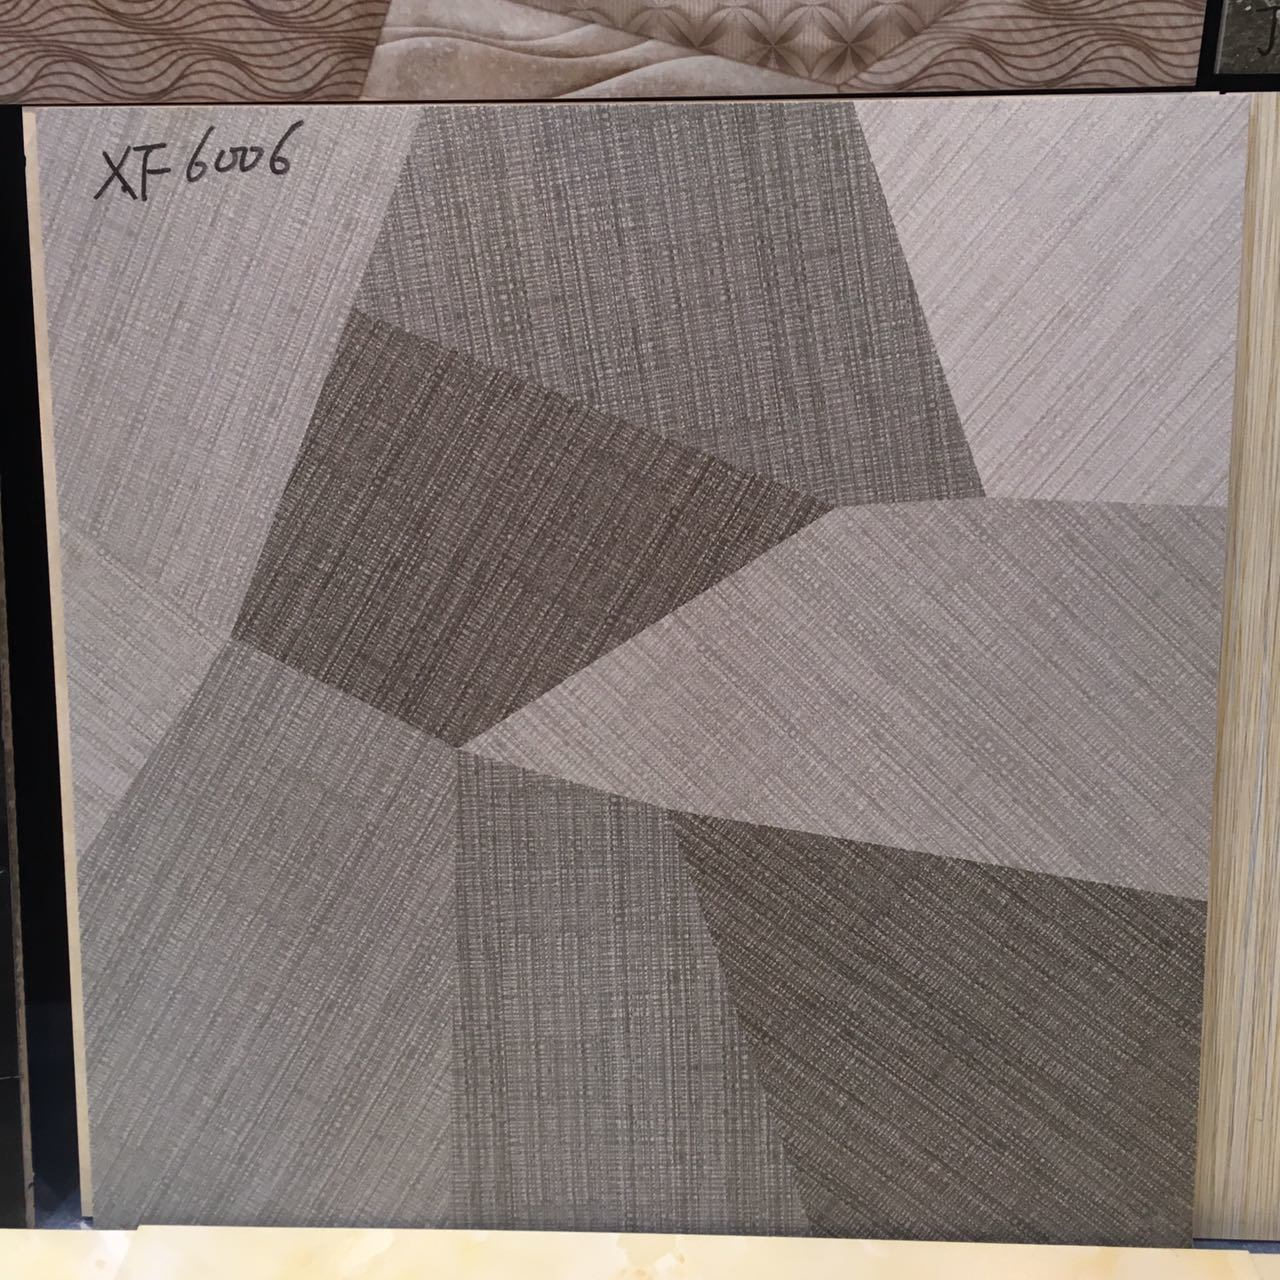 China textile fabrics look 600600mm ink jet non slip bathroom china textile fabrics look 600600mm ink jet non slip bathroom ceramic floor tile china building material flooring tile dailygadgetfo Choice Image